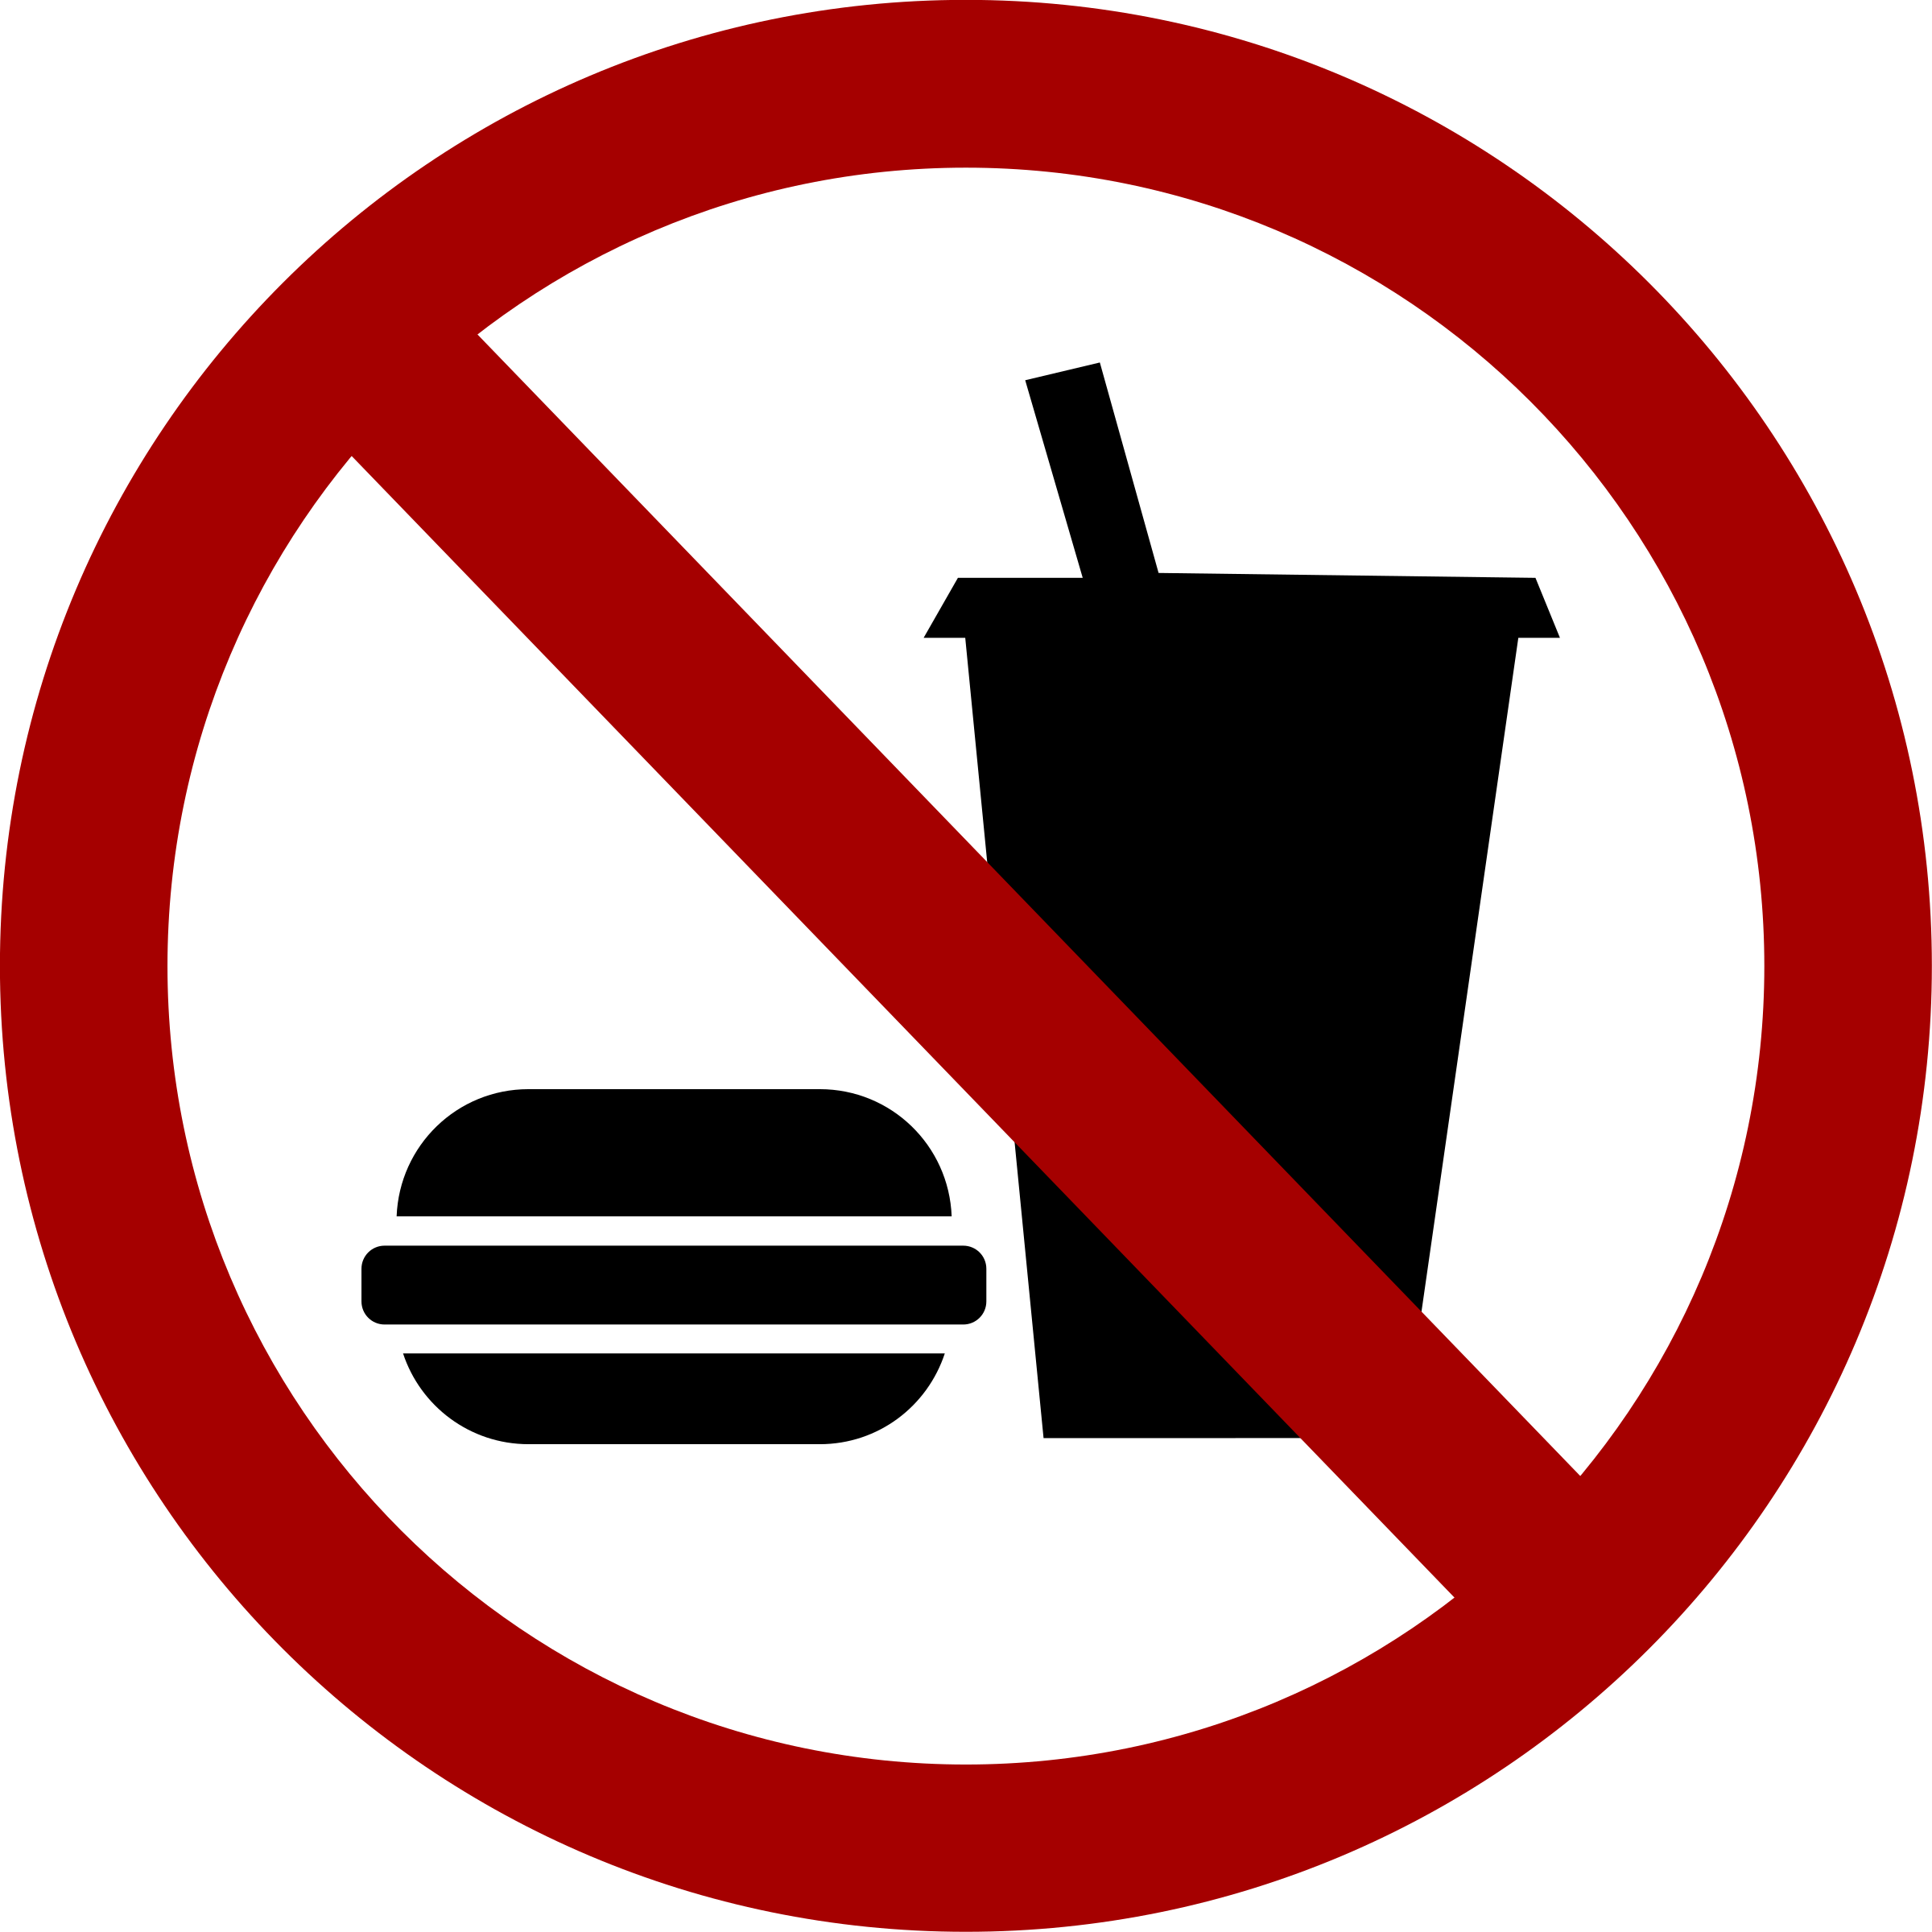 Drinking clipart food. No or drink group